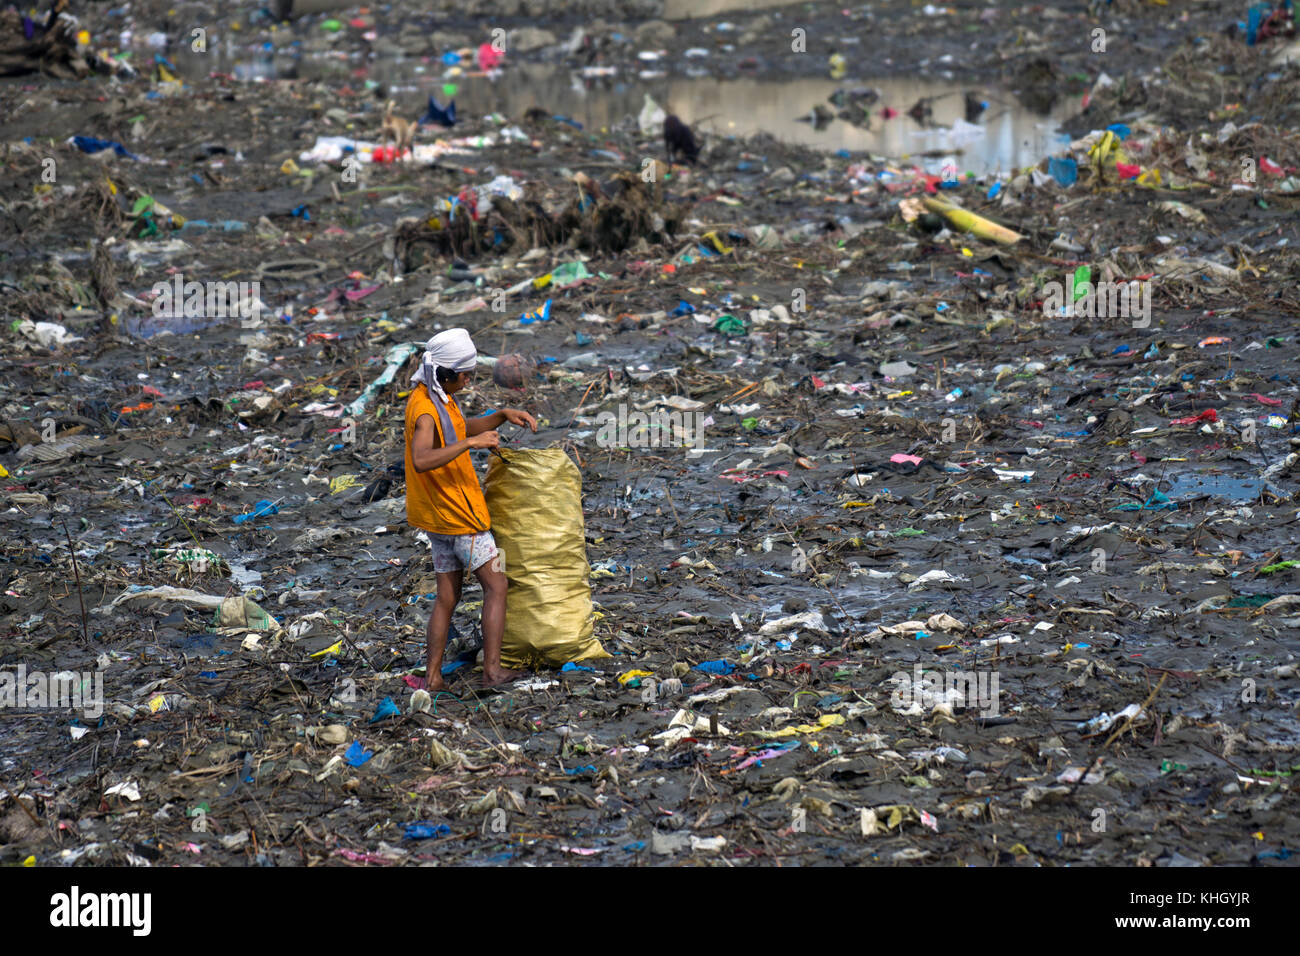 Cebu City, Philippines. 19th Nov, 2017. A man collects anything that that may be of value for recycling from an - Stock Image